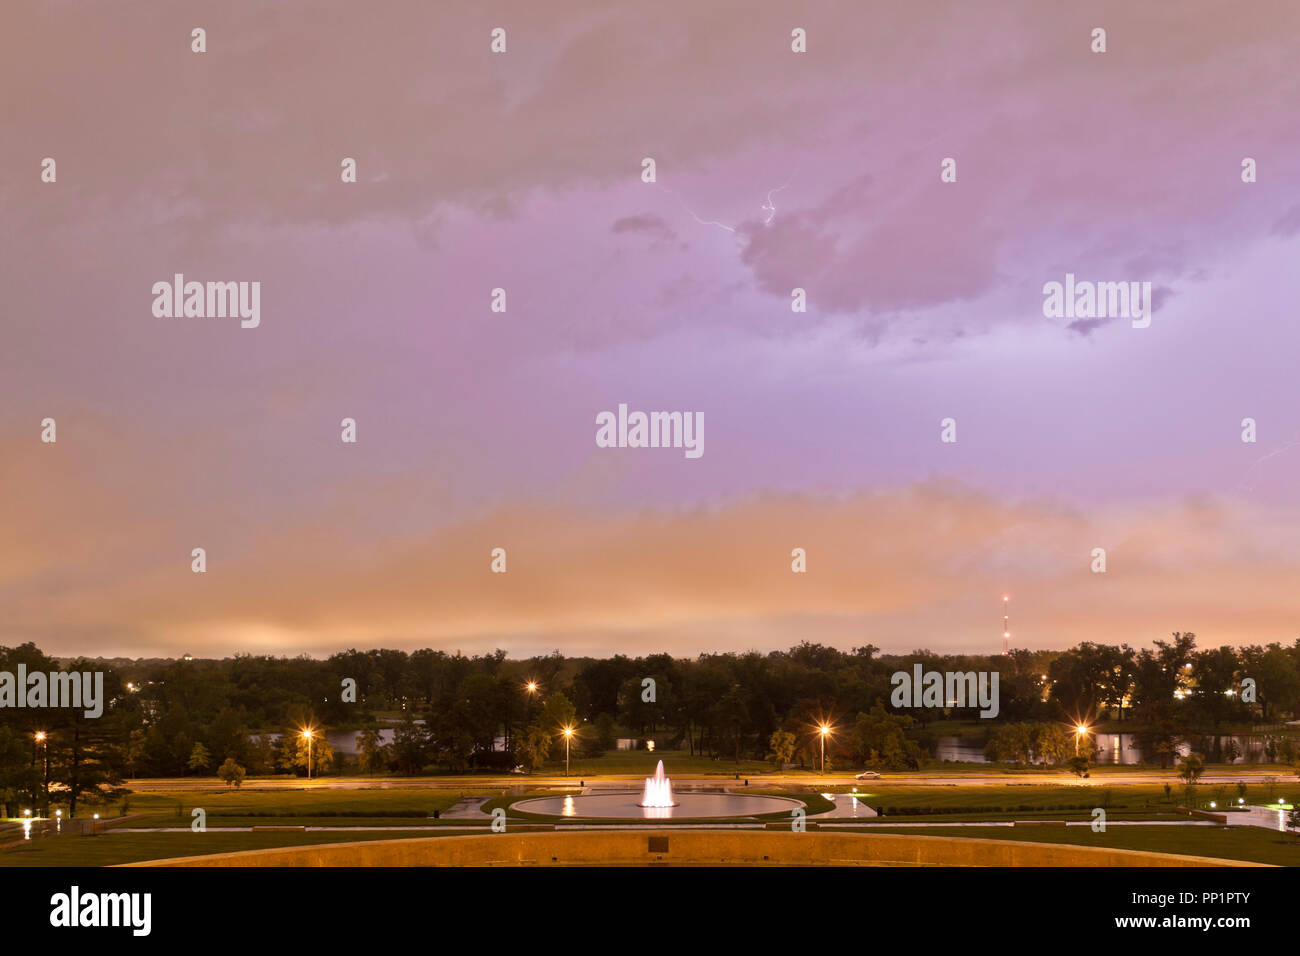 Watching a strong thunderstorm pass over from the shelter of the World's Fair Pavilion at St. Louis Forest Park under a sky with striking pannus cloud - Stock Image